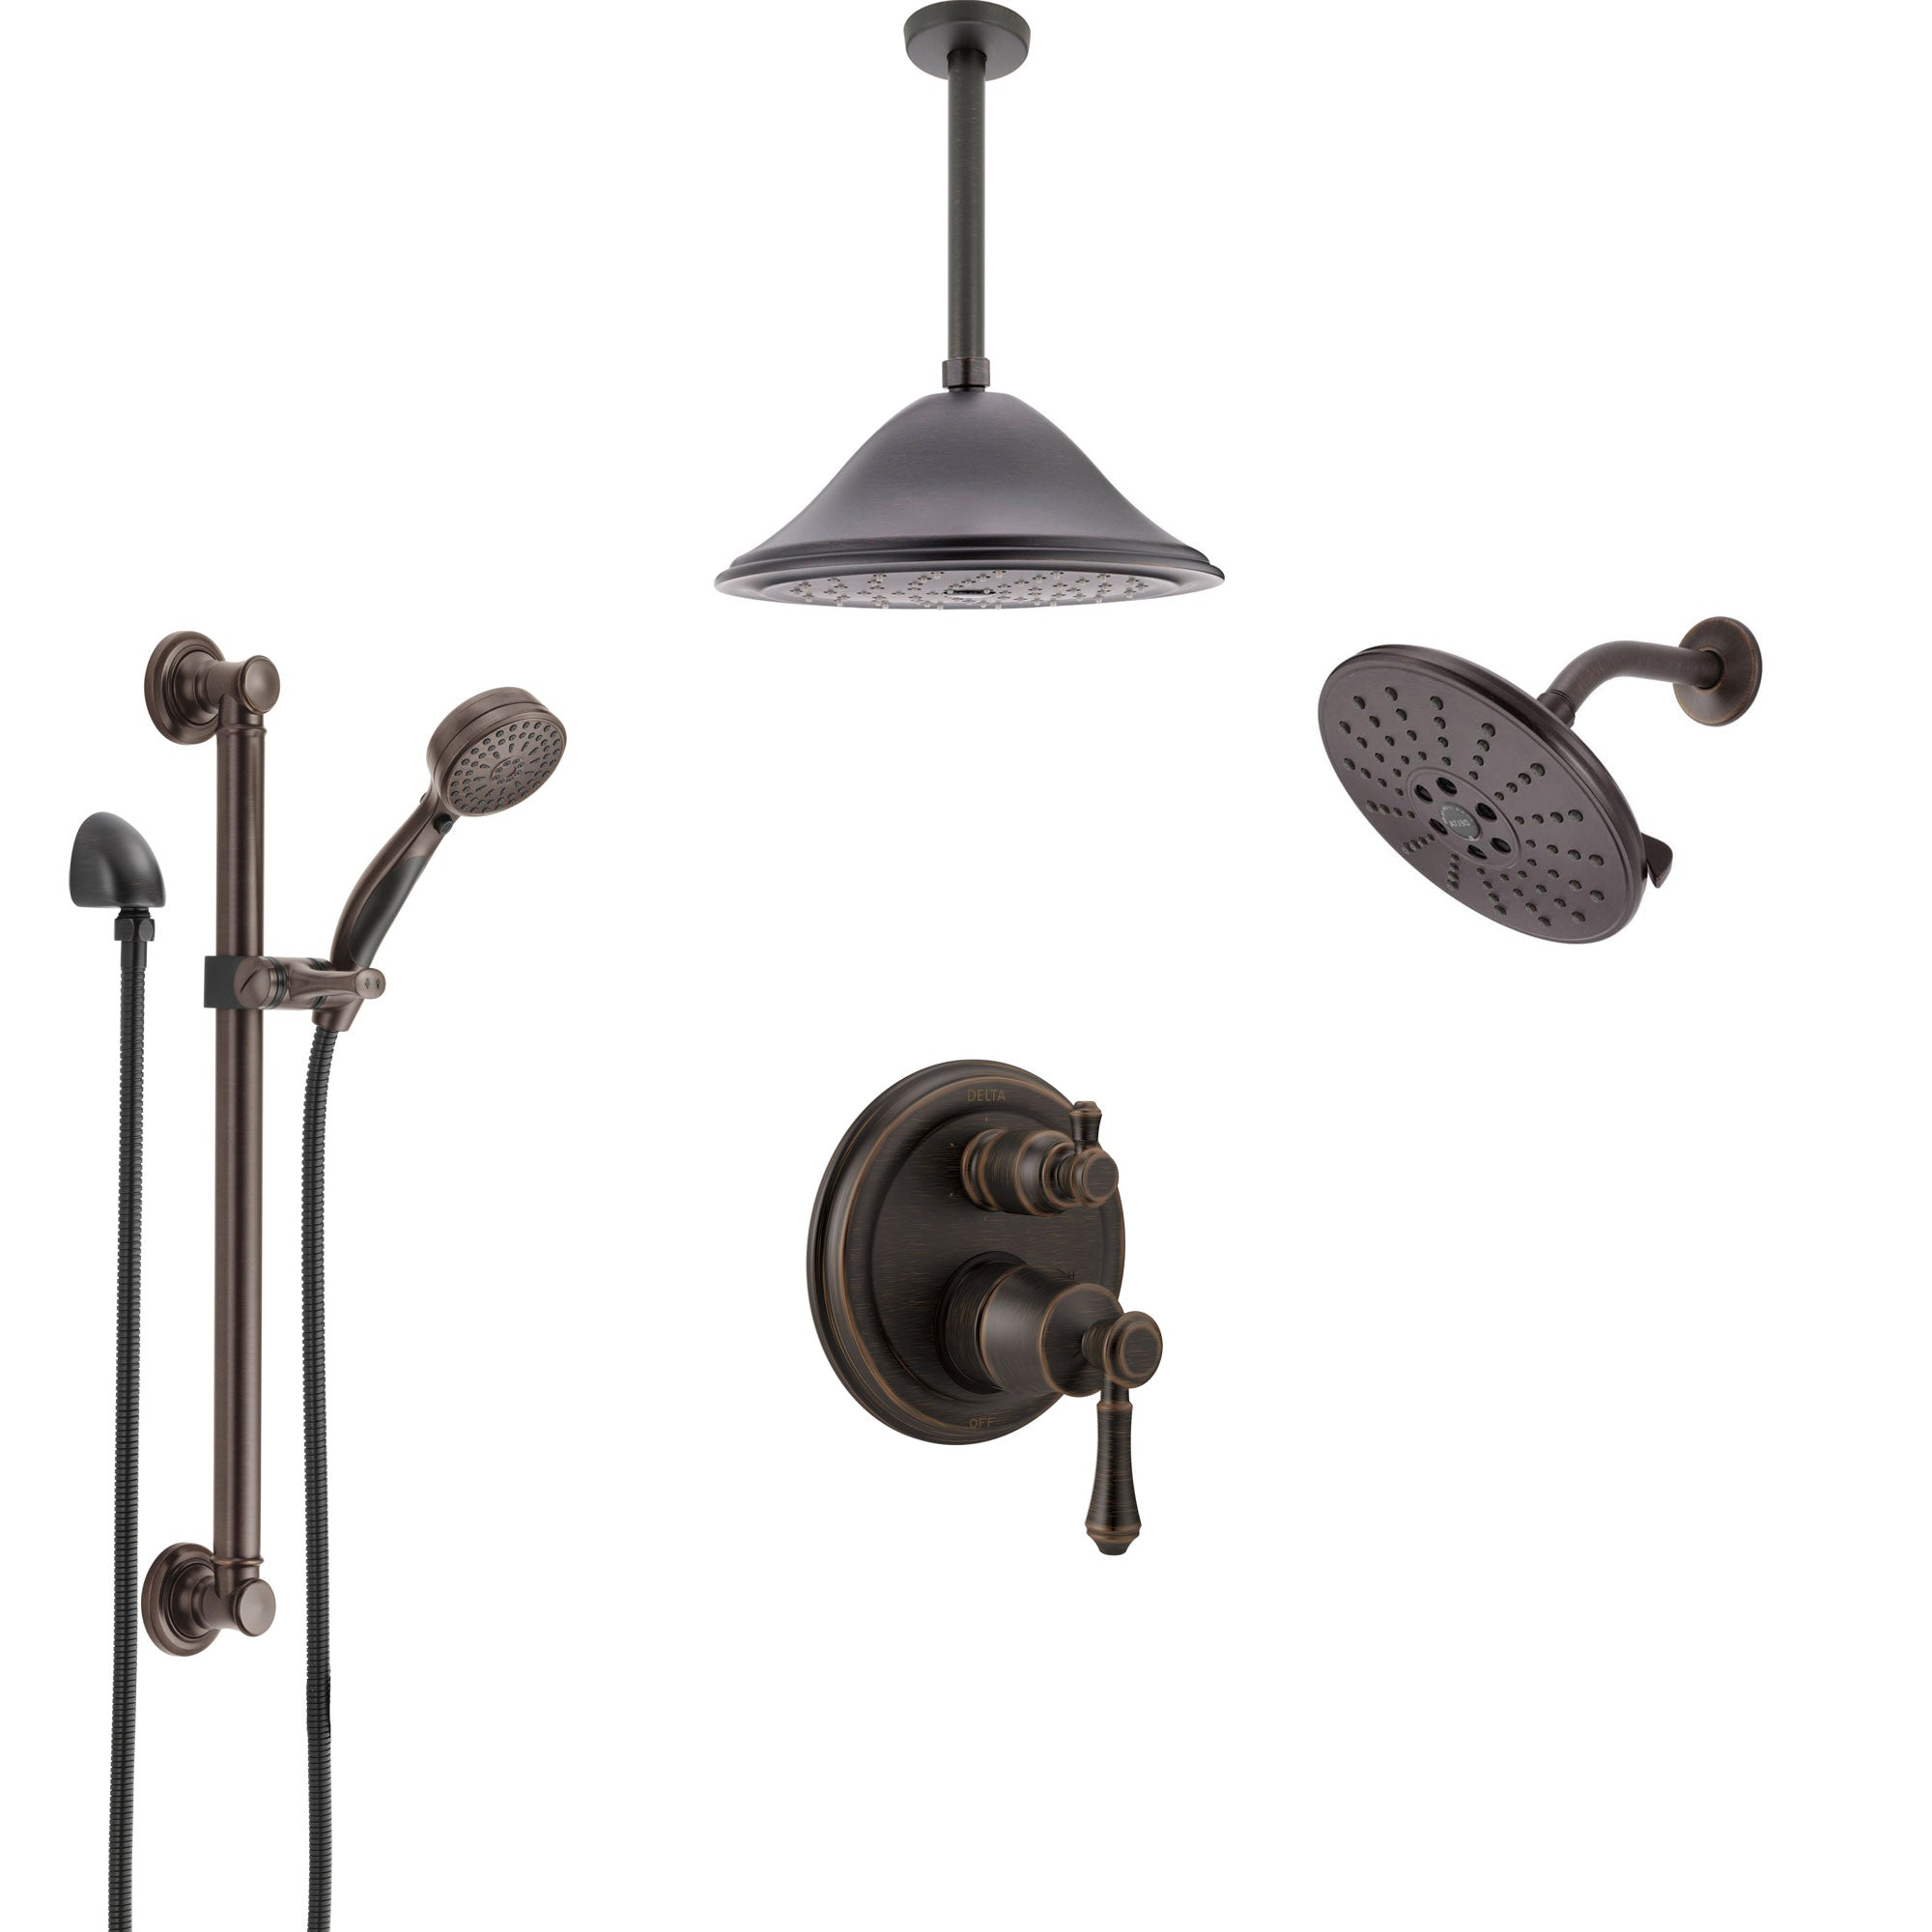 Delta Cassidy Venetian Bronze Integrated Diverter Shower System Control Handle, Showerhead, Ceiling Showerhead, and Grab Bar Hand Shower SS24997RB9